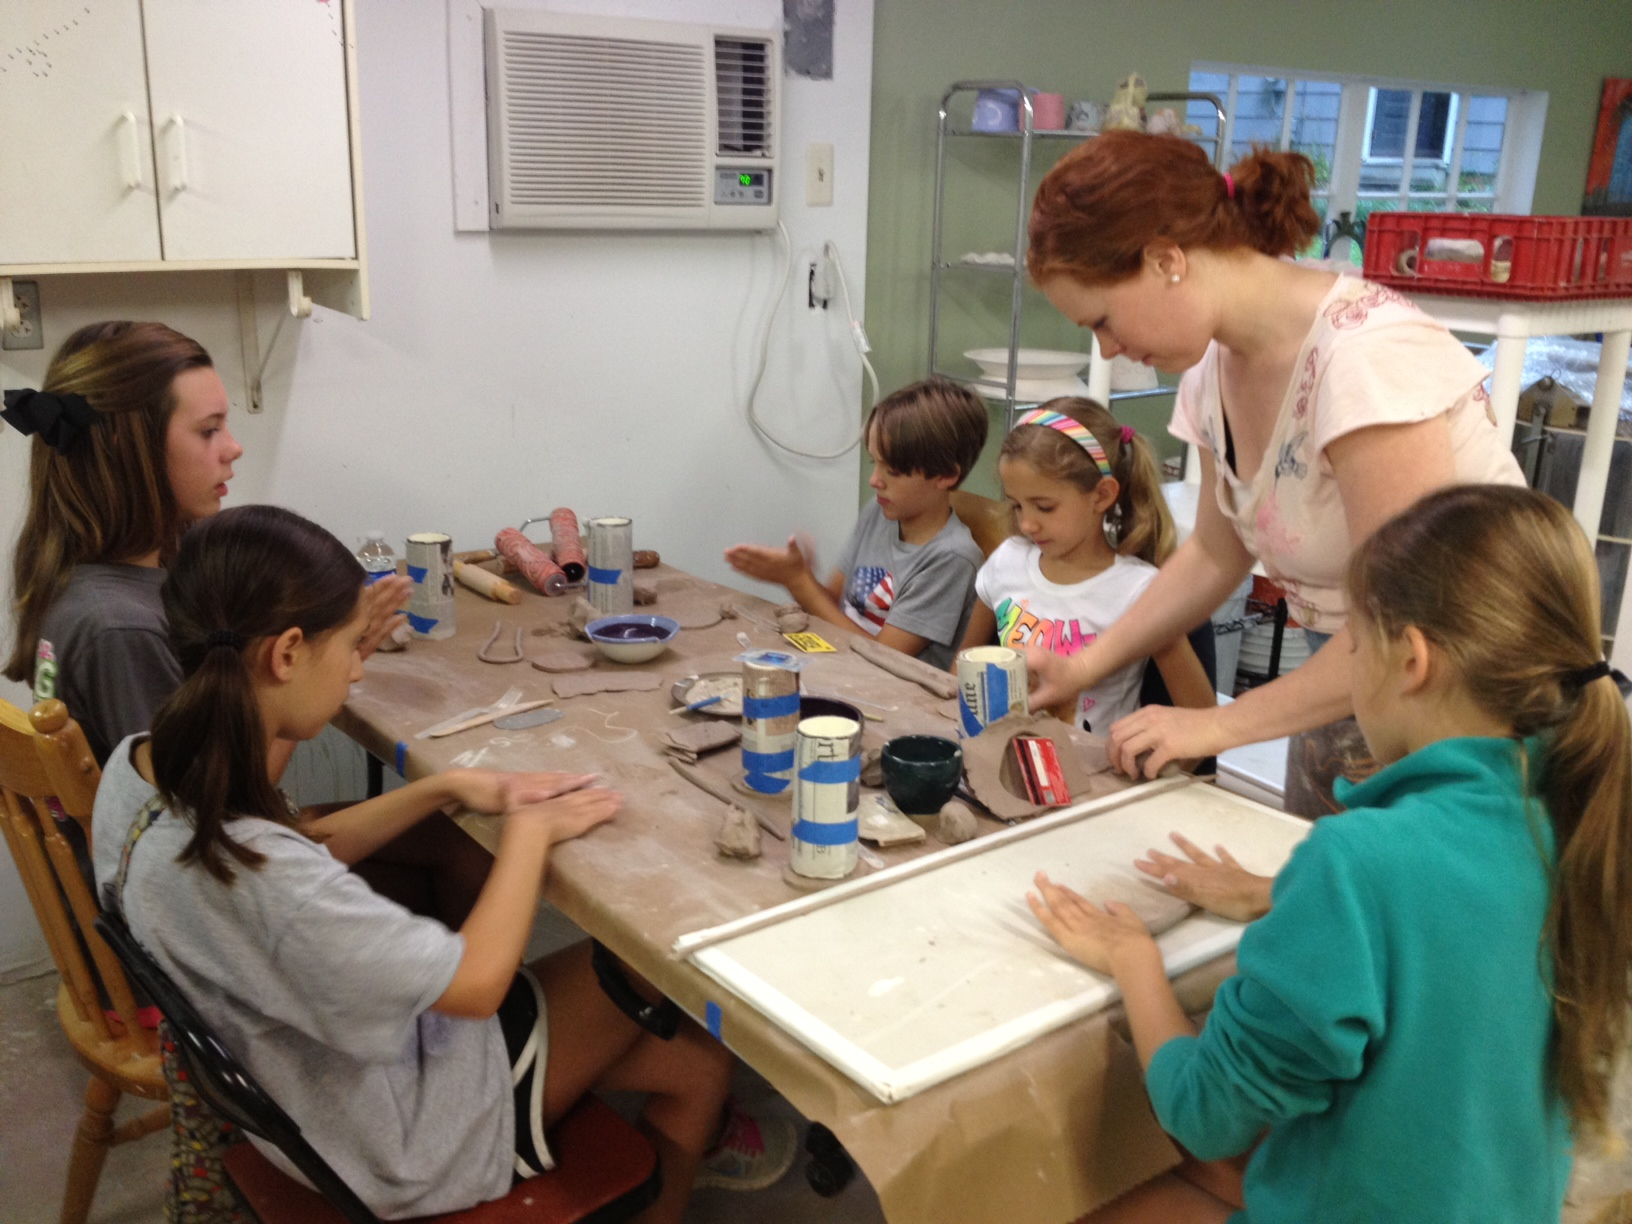 Youth Pottery Class - The highlight of the week!